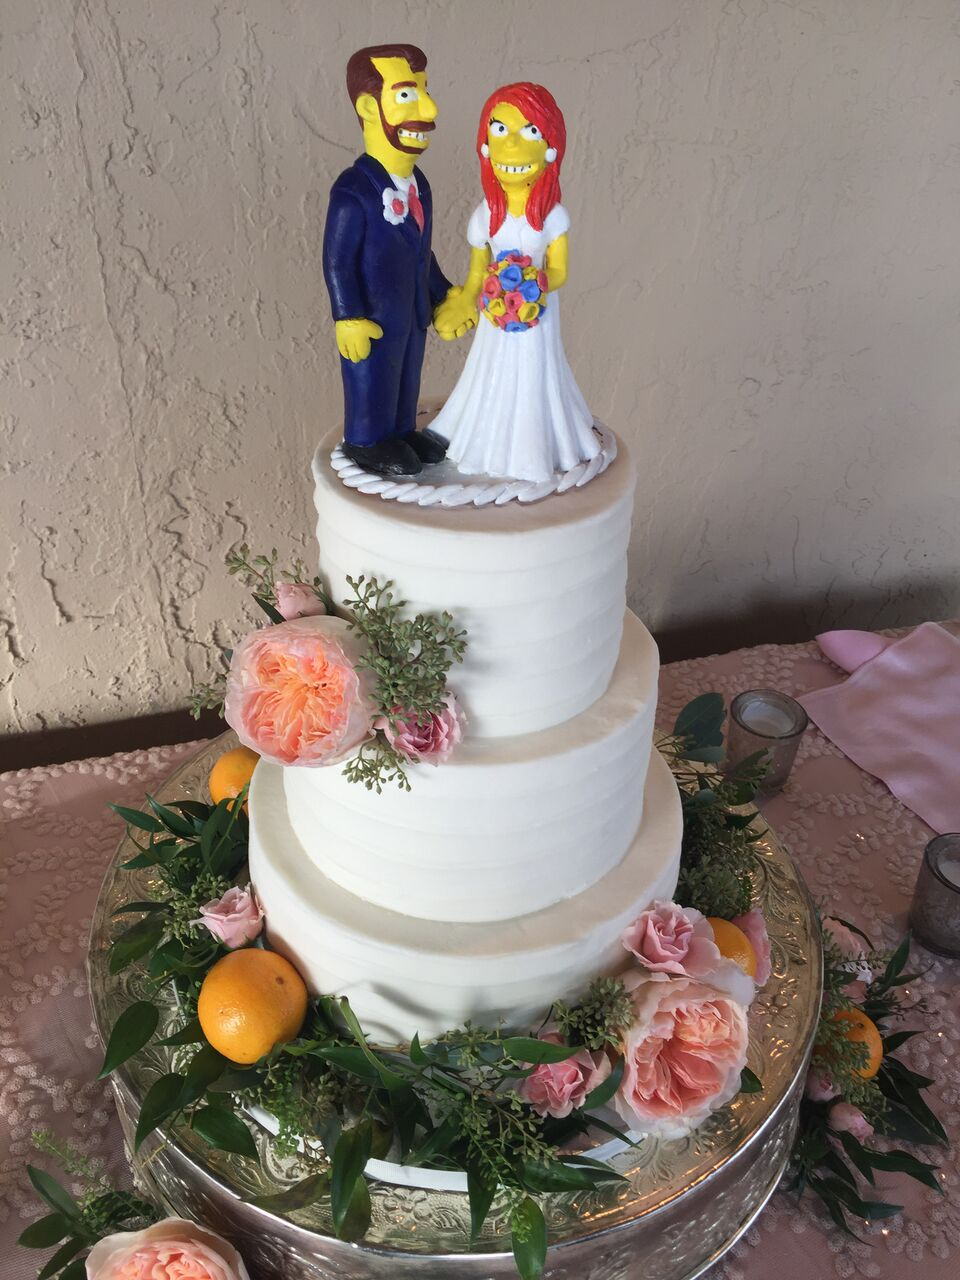 Black open air photo booth at Mission Inn Resort wedding with Homer Simpson prop and simpson character cake toppers